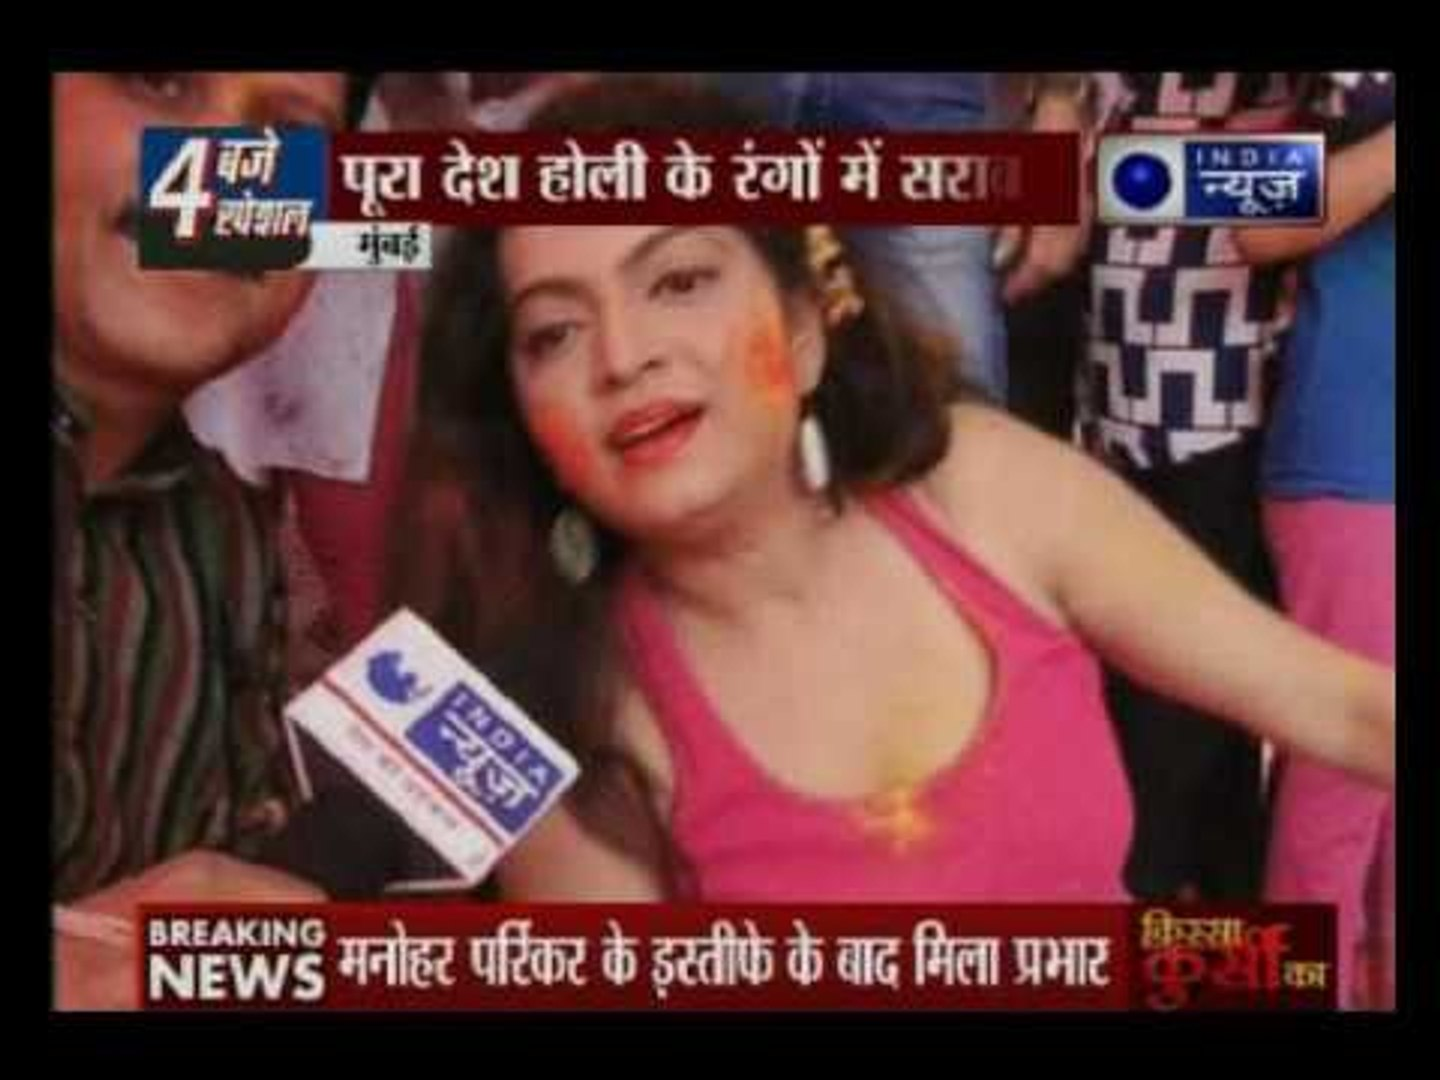 Mumbai: India News special report on Holi by India News' correpondent Satyaprakash Sharma